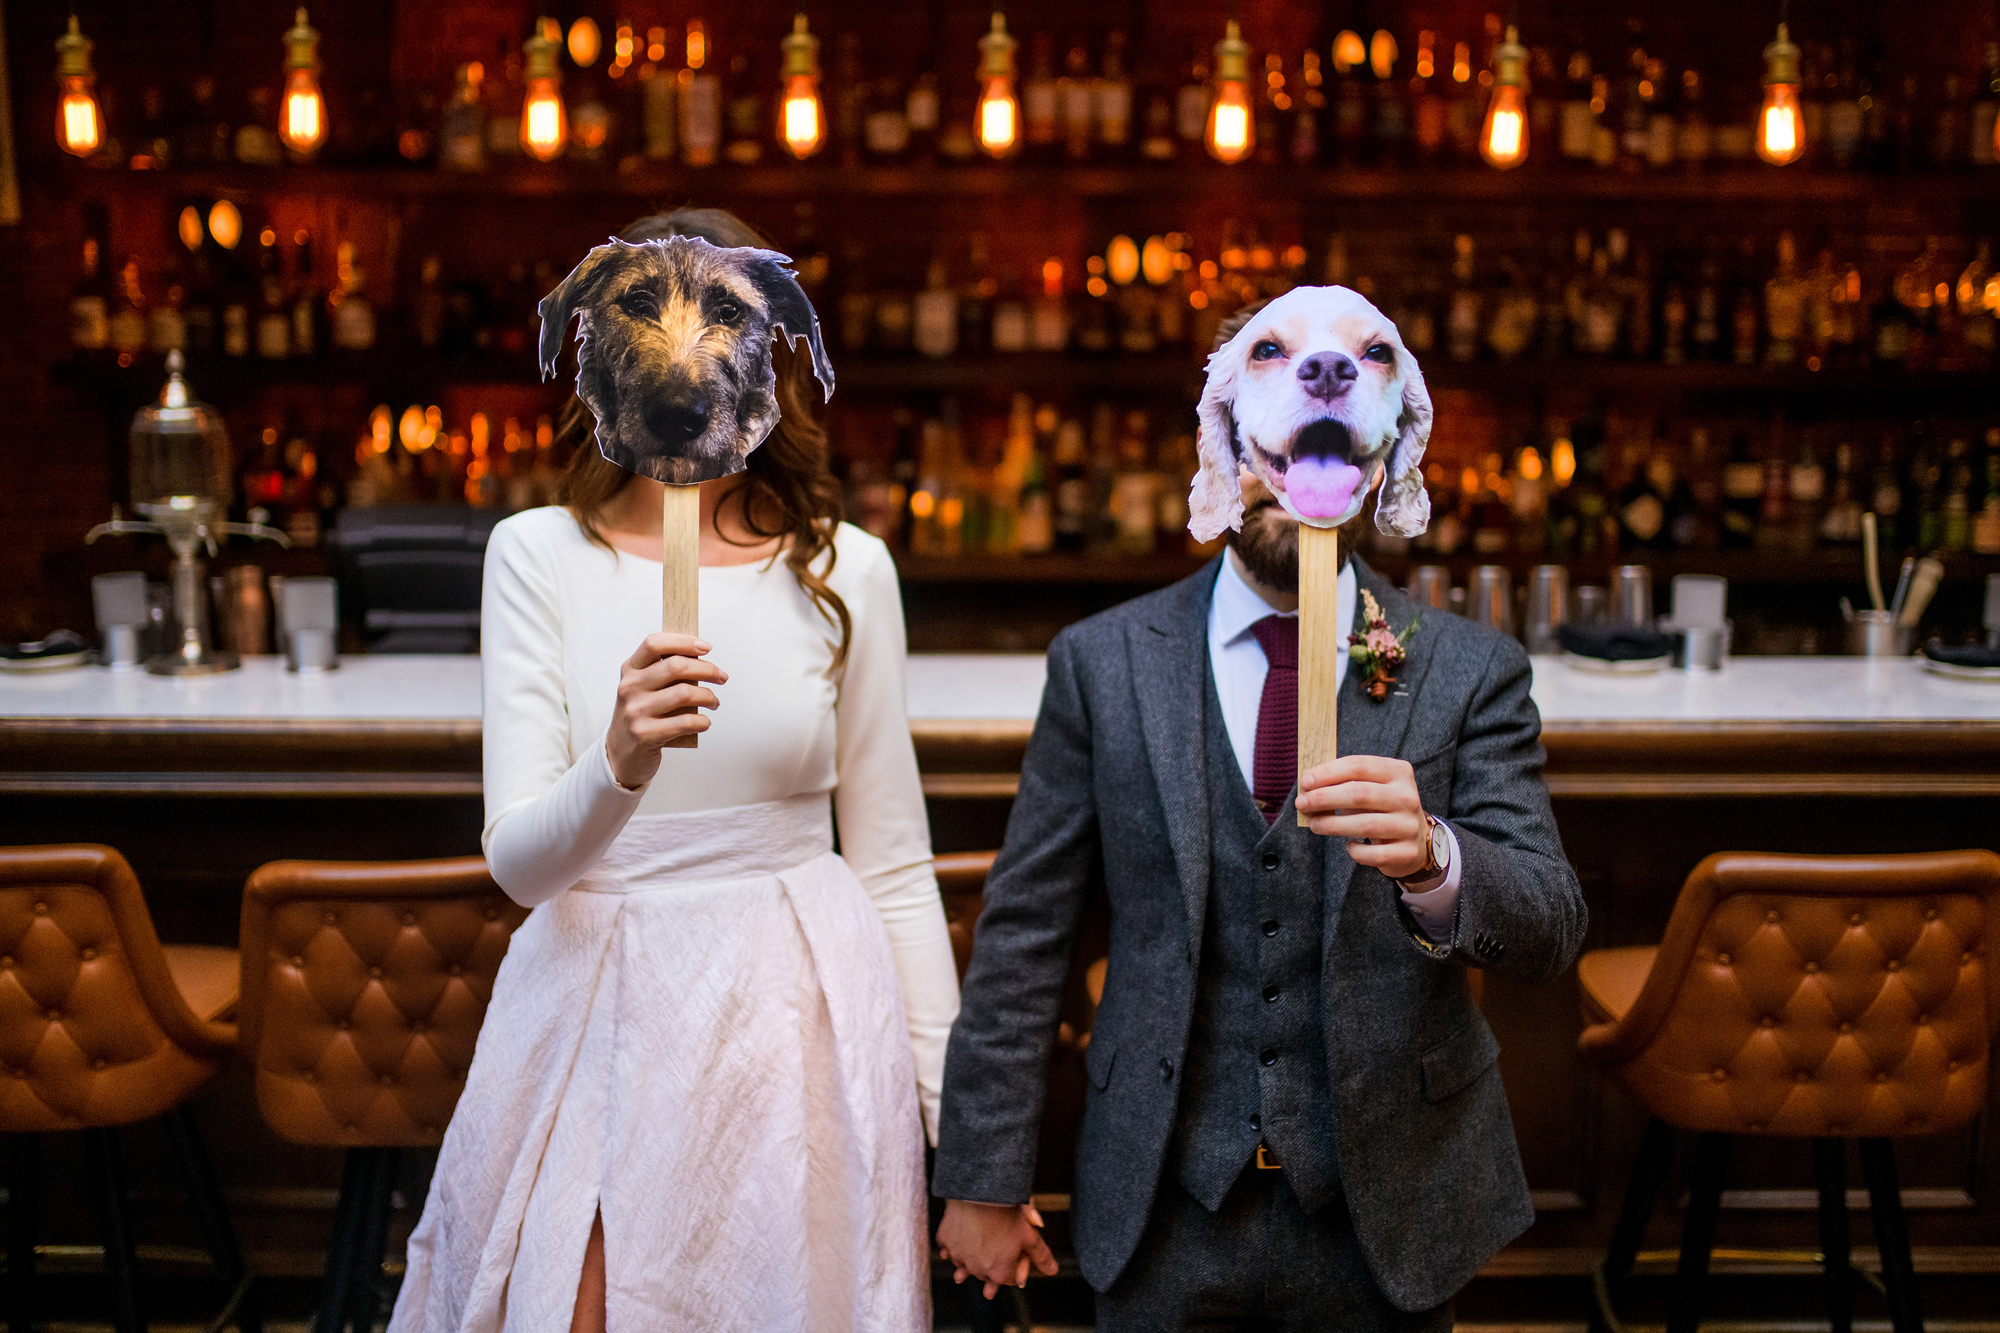 Bride and groom with doggie masks - photo by Cooked Photography